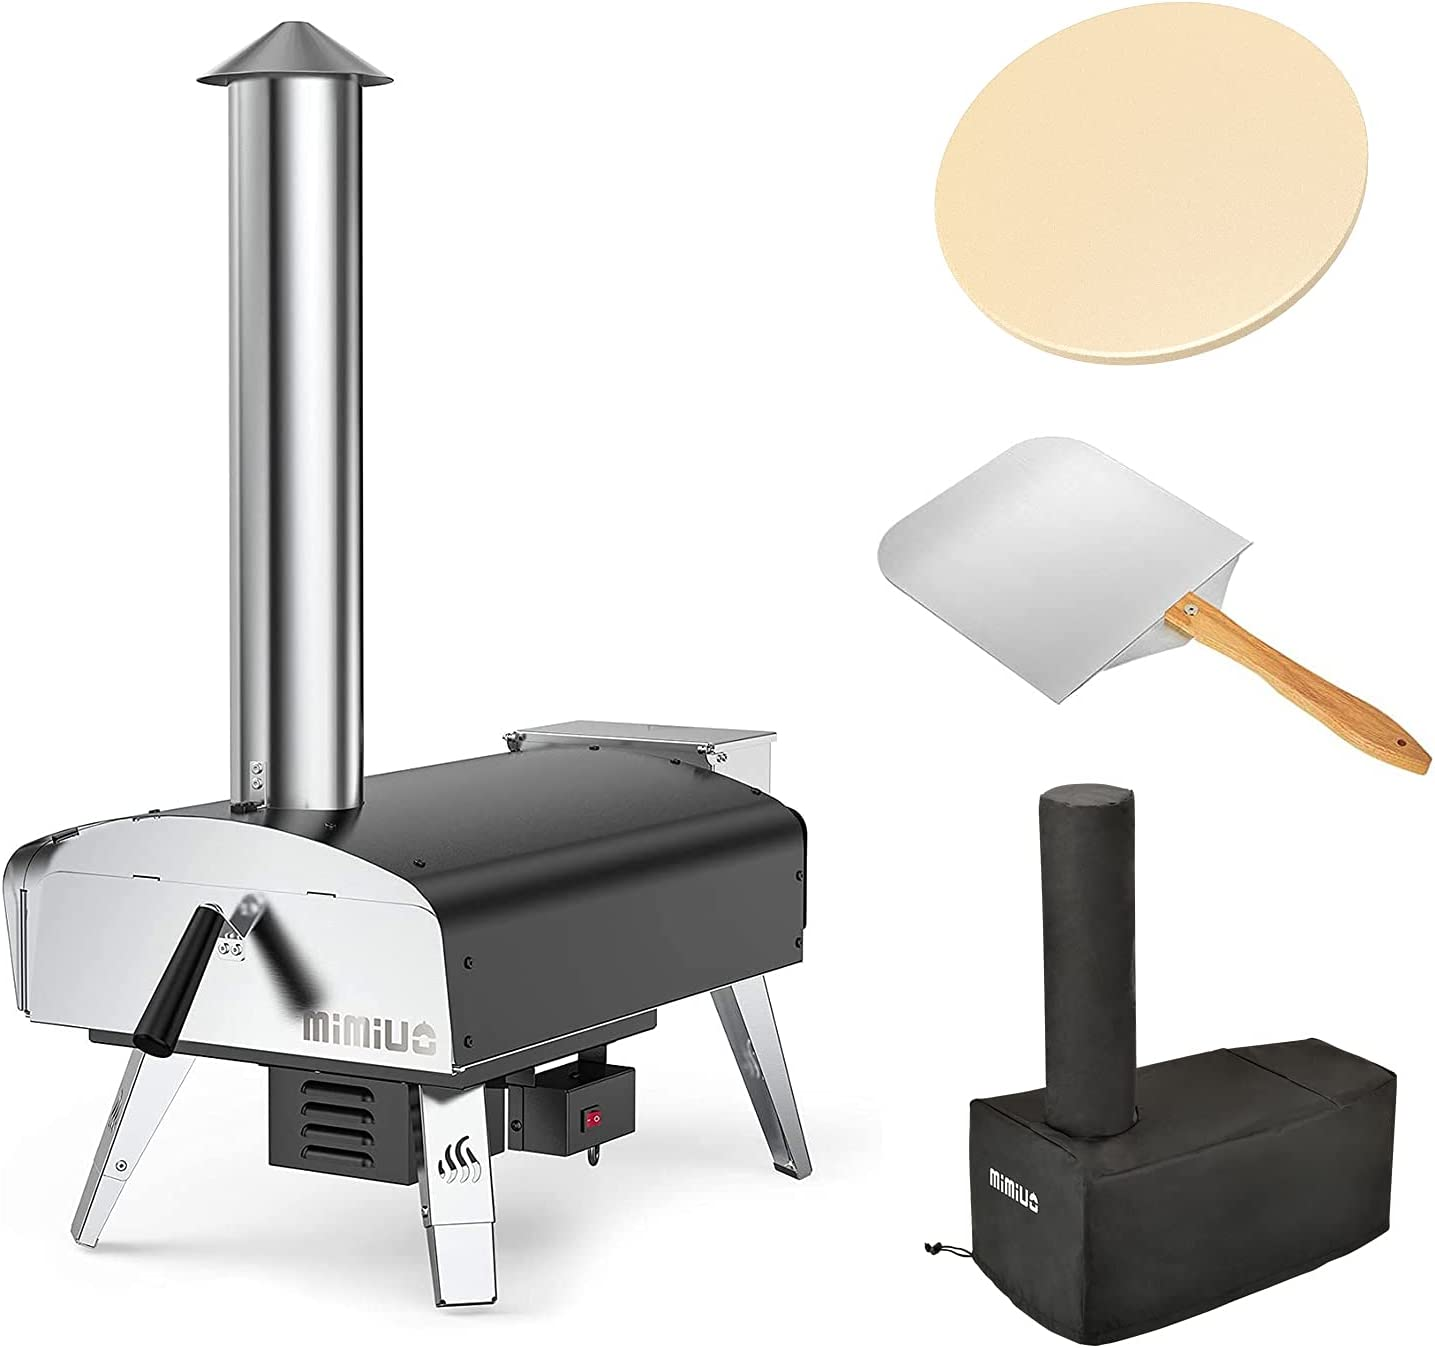 Mimiuo Black Portable Wood Pellet Award Oven Ston Selling with Pizza 13